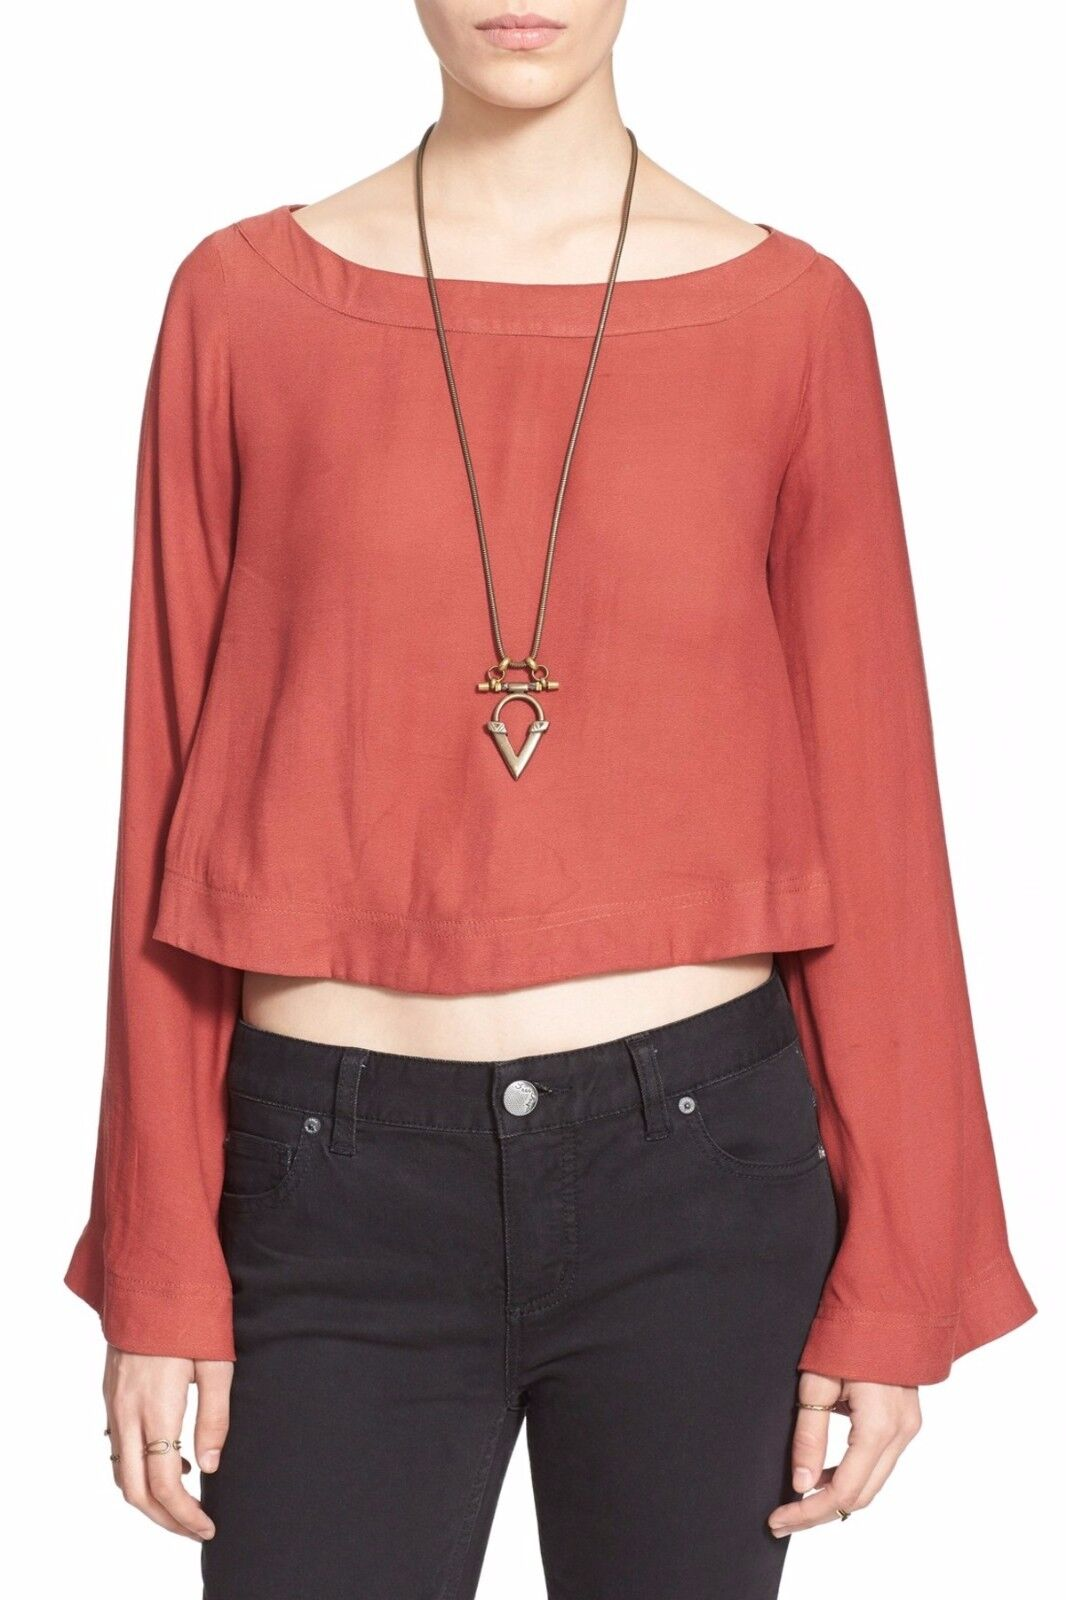 NWT FREE PEOPLE damen SzM STAR ALIGNED BELL SLEEVE CROP TOP BLOUSE rot CLAY